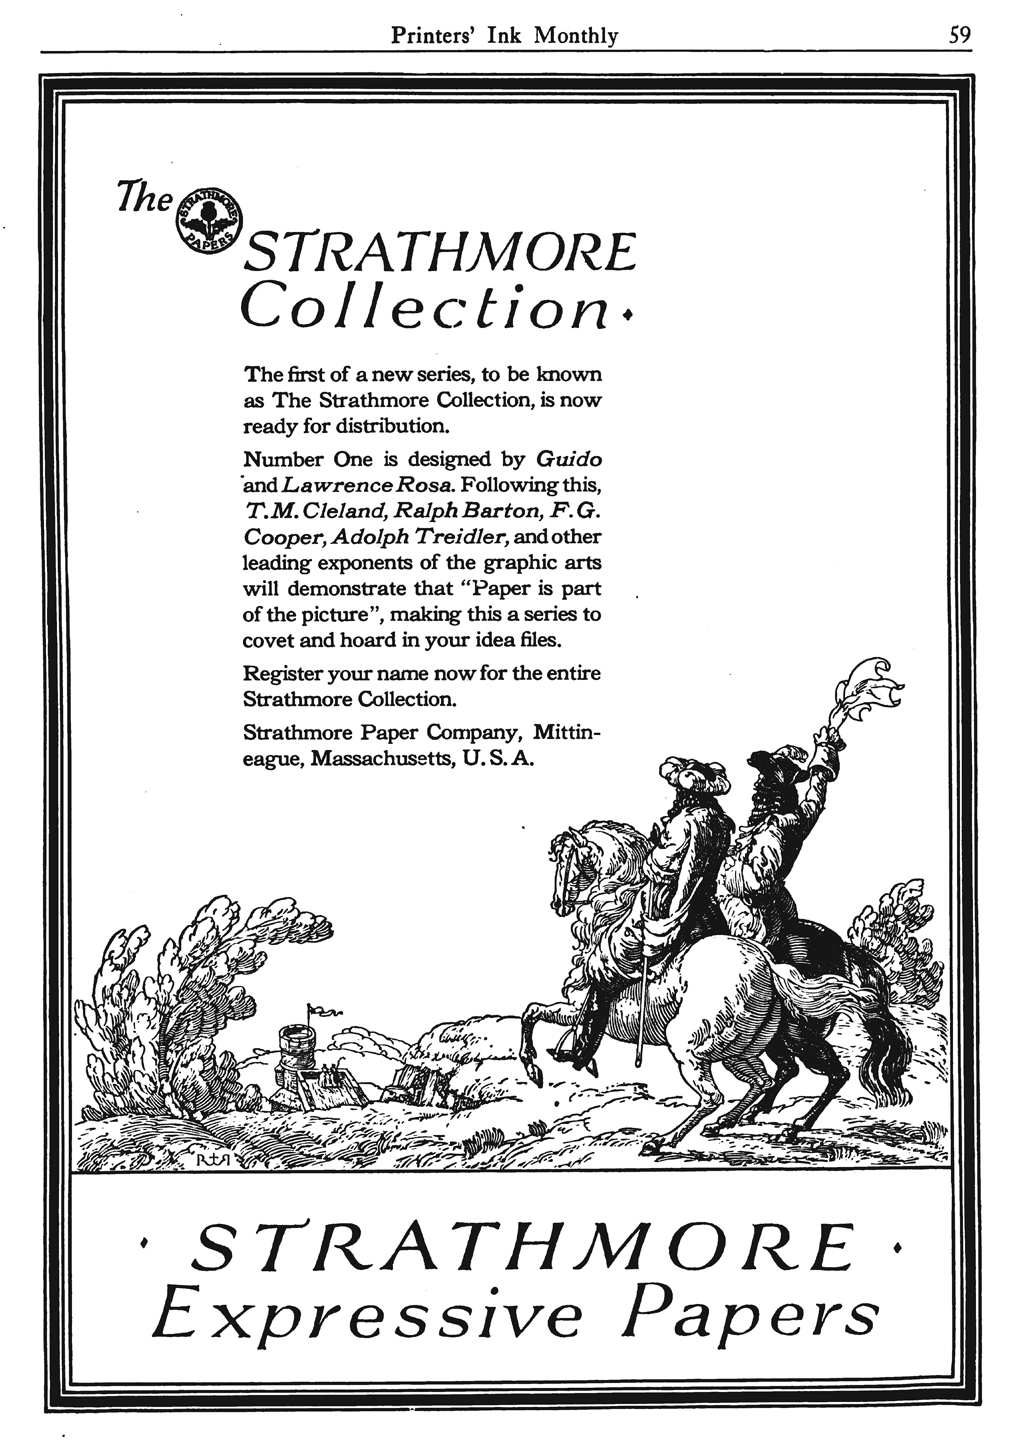 """The Strathmore Collection"" advertisement in Printers' Ink Monthly vol. 4, no. 4 (March 1922). Design by Guido and Lawrence Rosa."